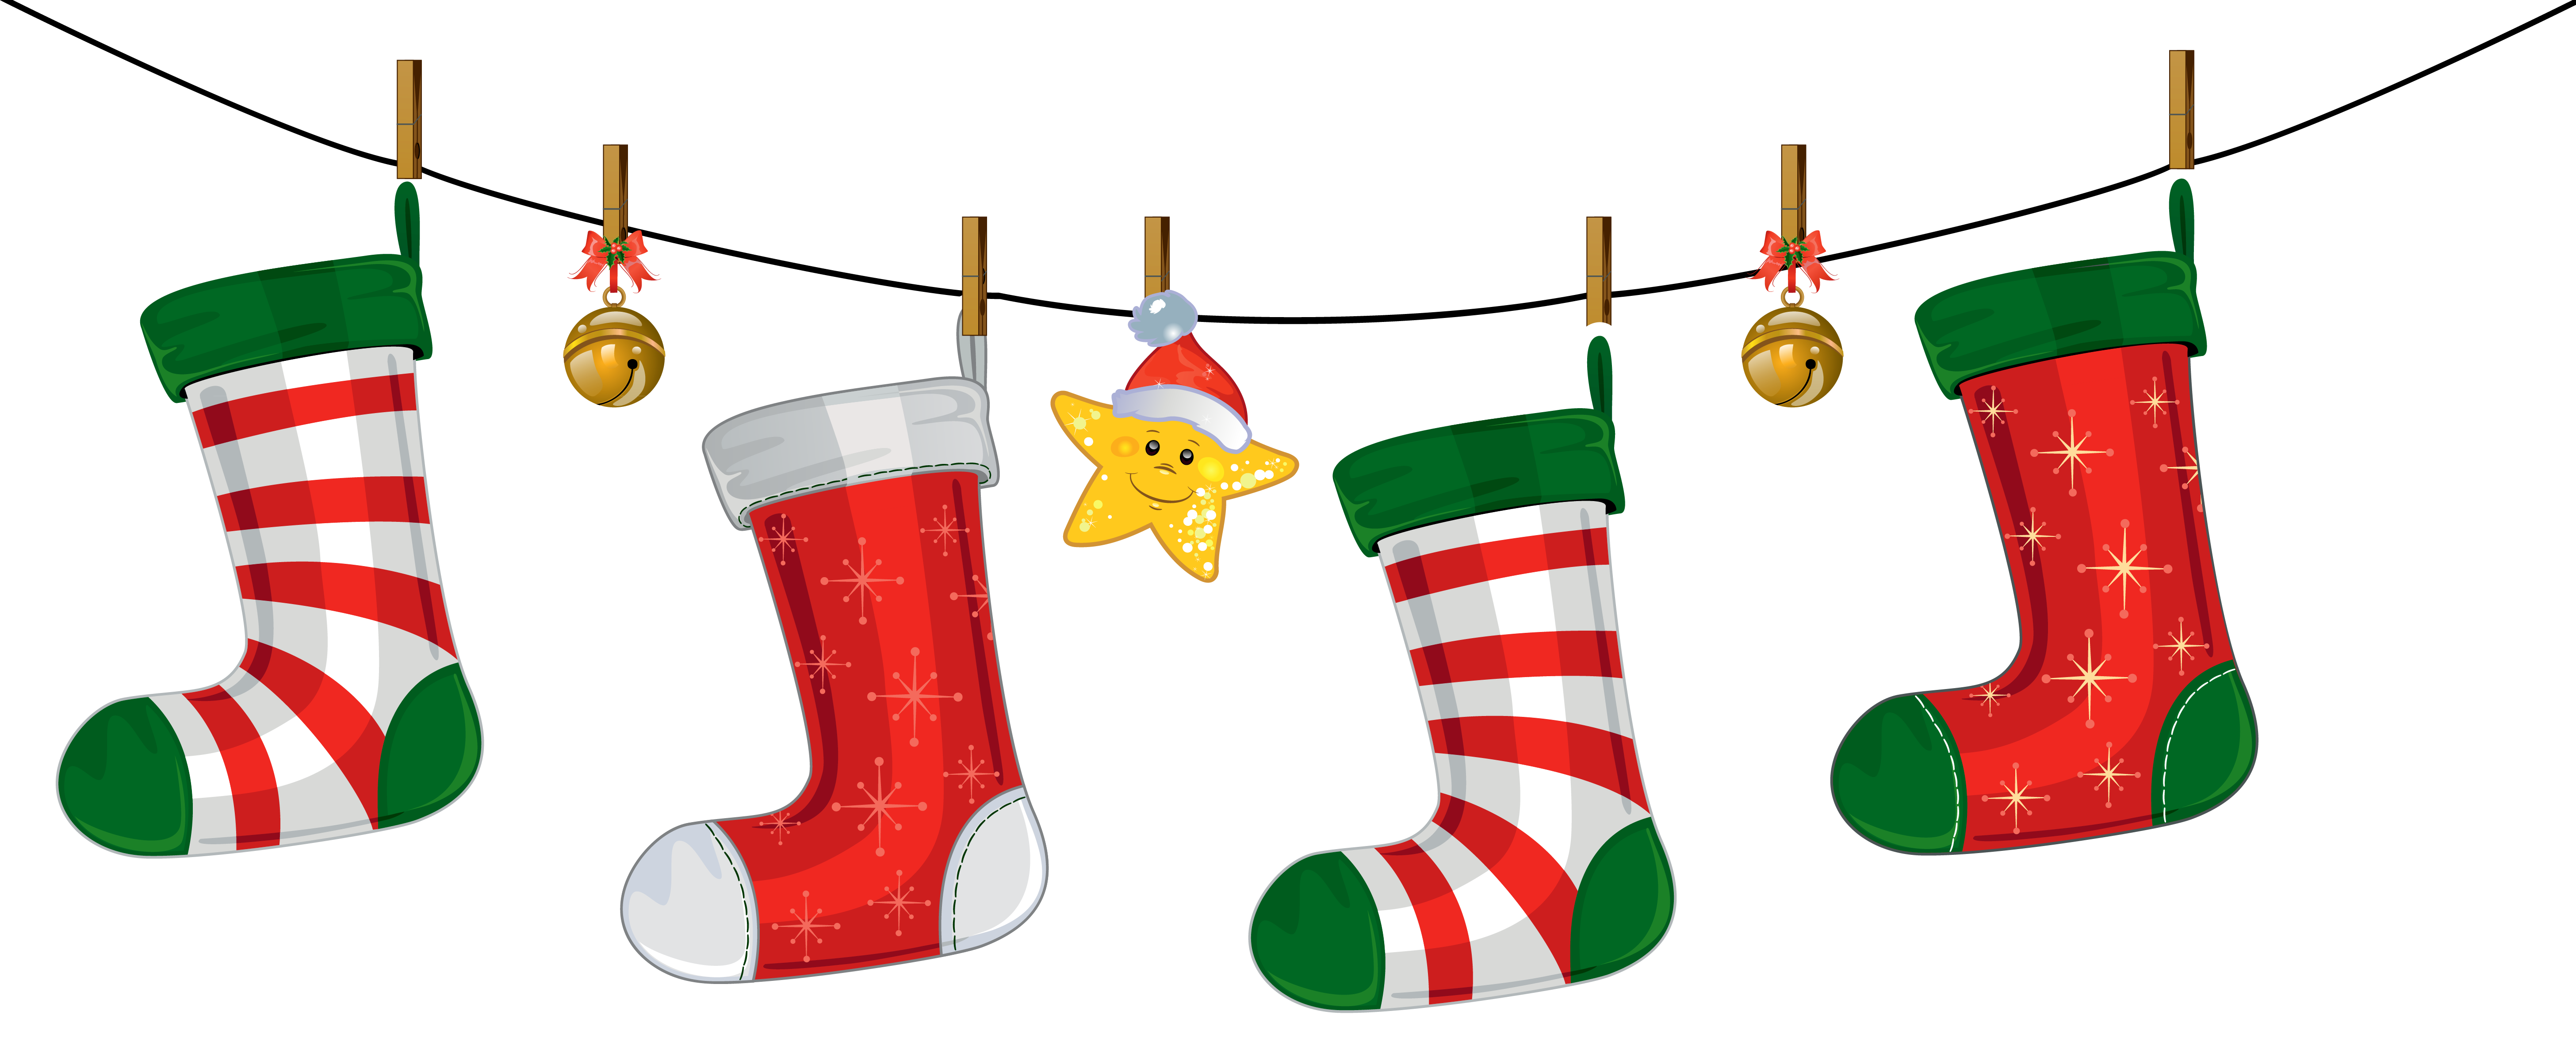 5825x2372 88 Free Christmas Clip Art Transparent Background ClipartLook